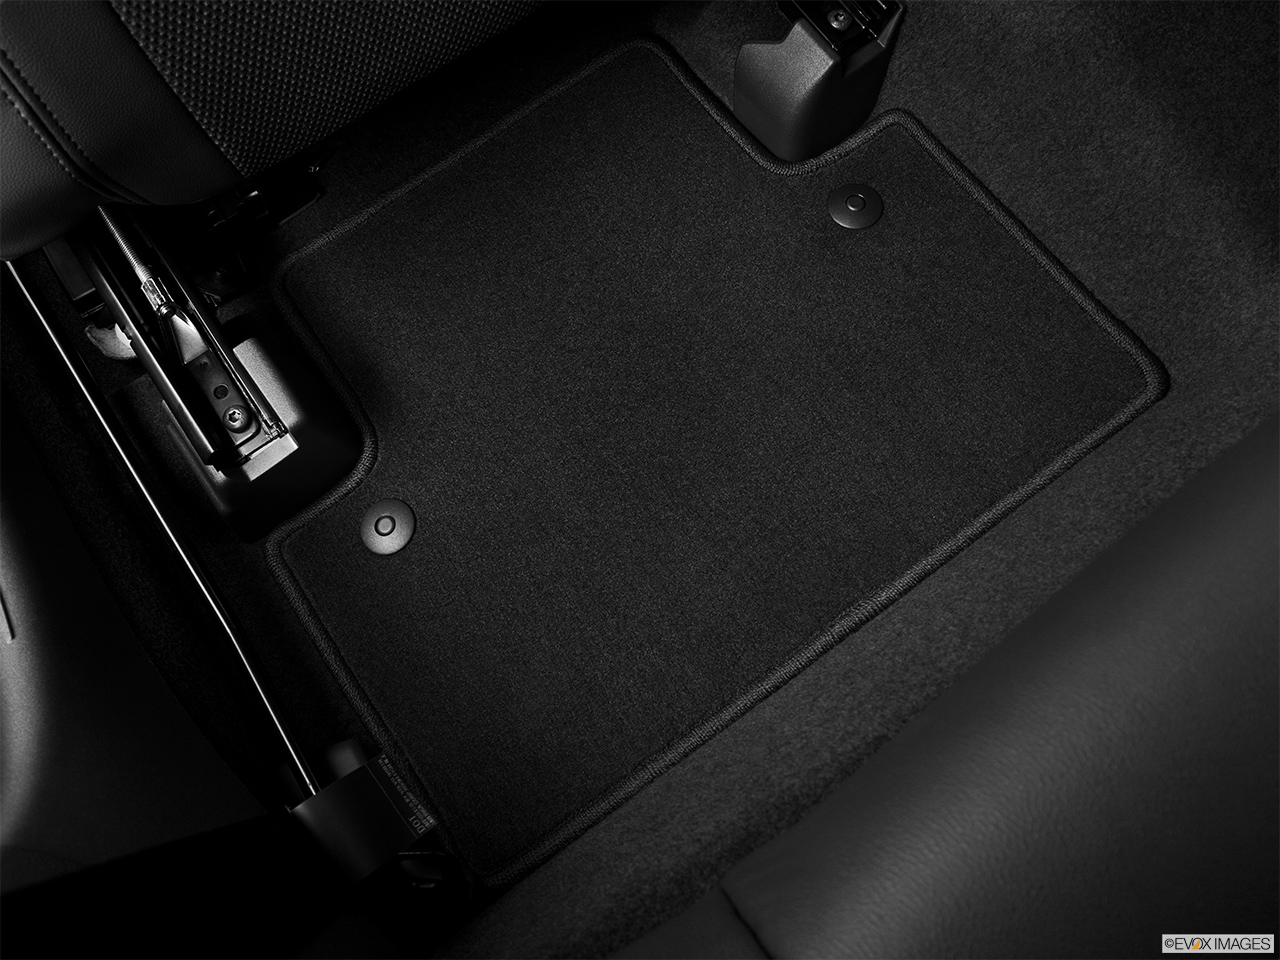 2013 Volvo C30 T5 Premier Plus Rear driver's side floor mat. Mid-seat level from outside looking in.